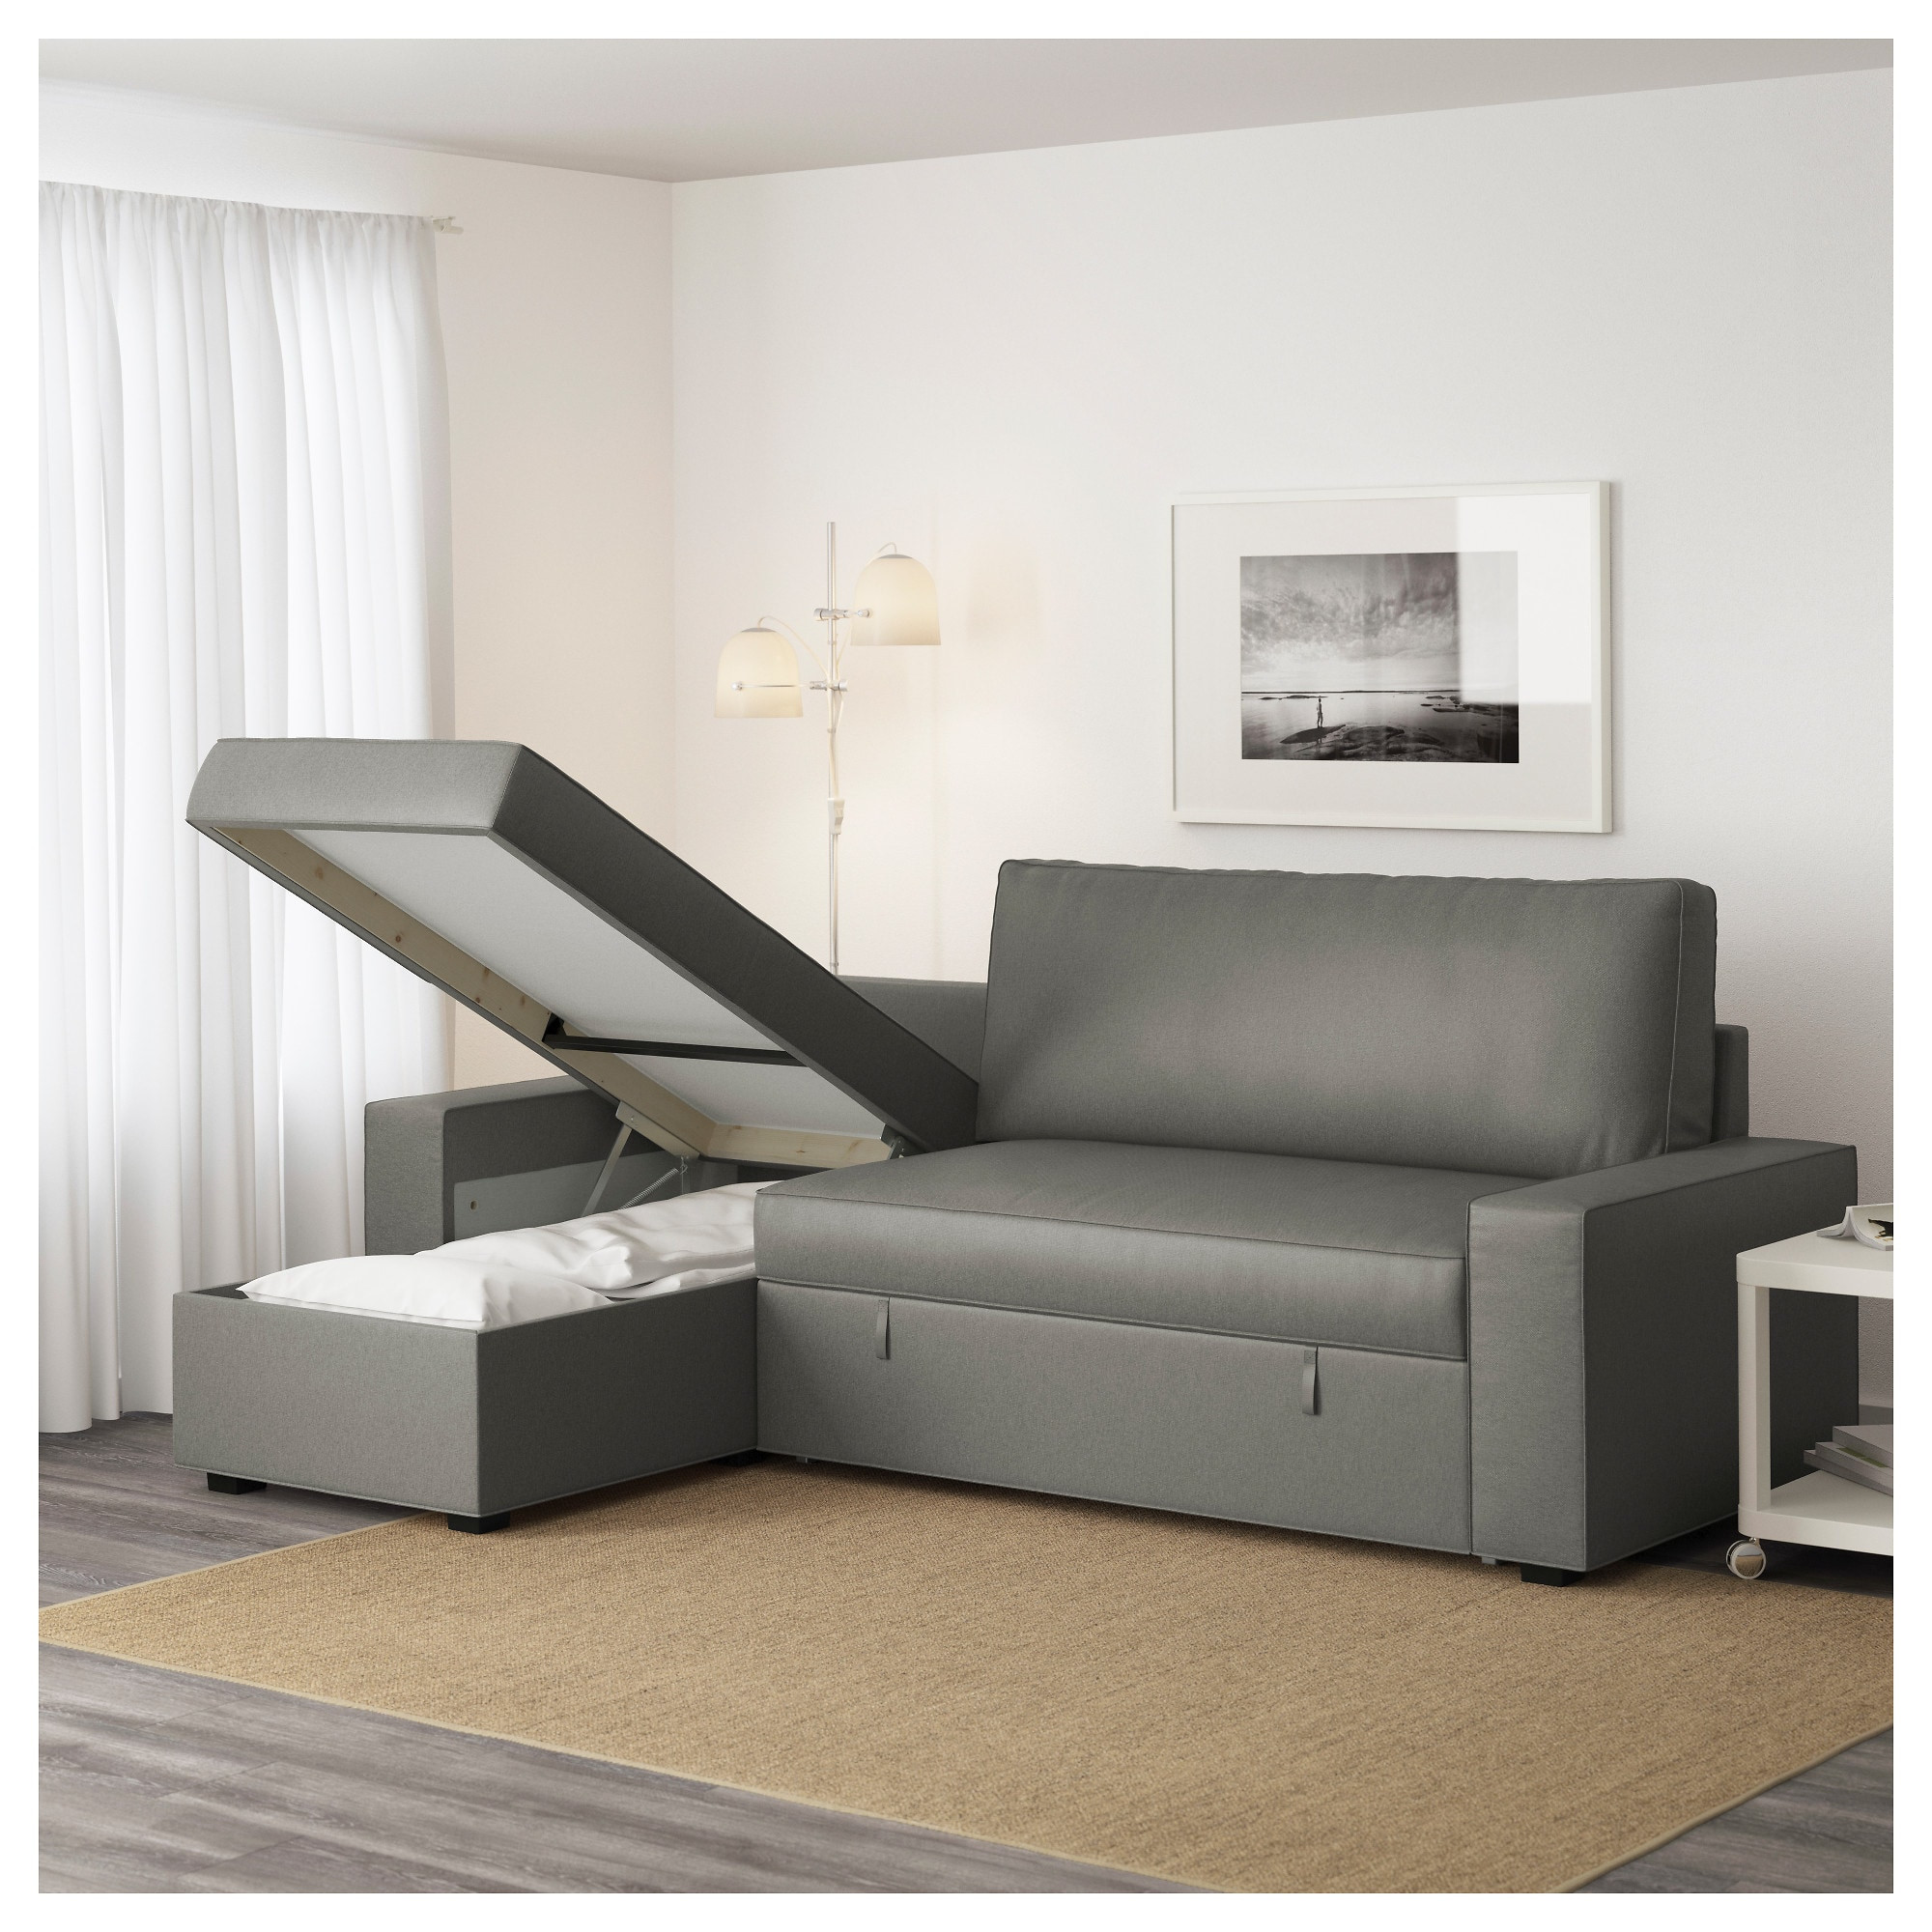 Sofas 5 Plazas Chaise Longue Lujo Vilasund sofa Bed with Chaise Longue Borred Grey Green Ikea Of Sofas 5 Plazas Chaise Longue Arriba sofás 4 Plazas Con Chaise Longue